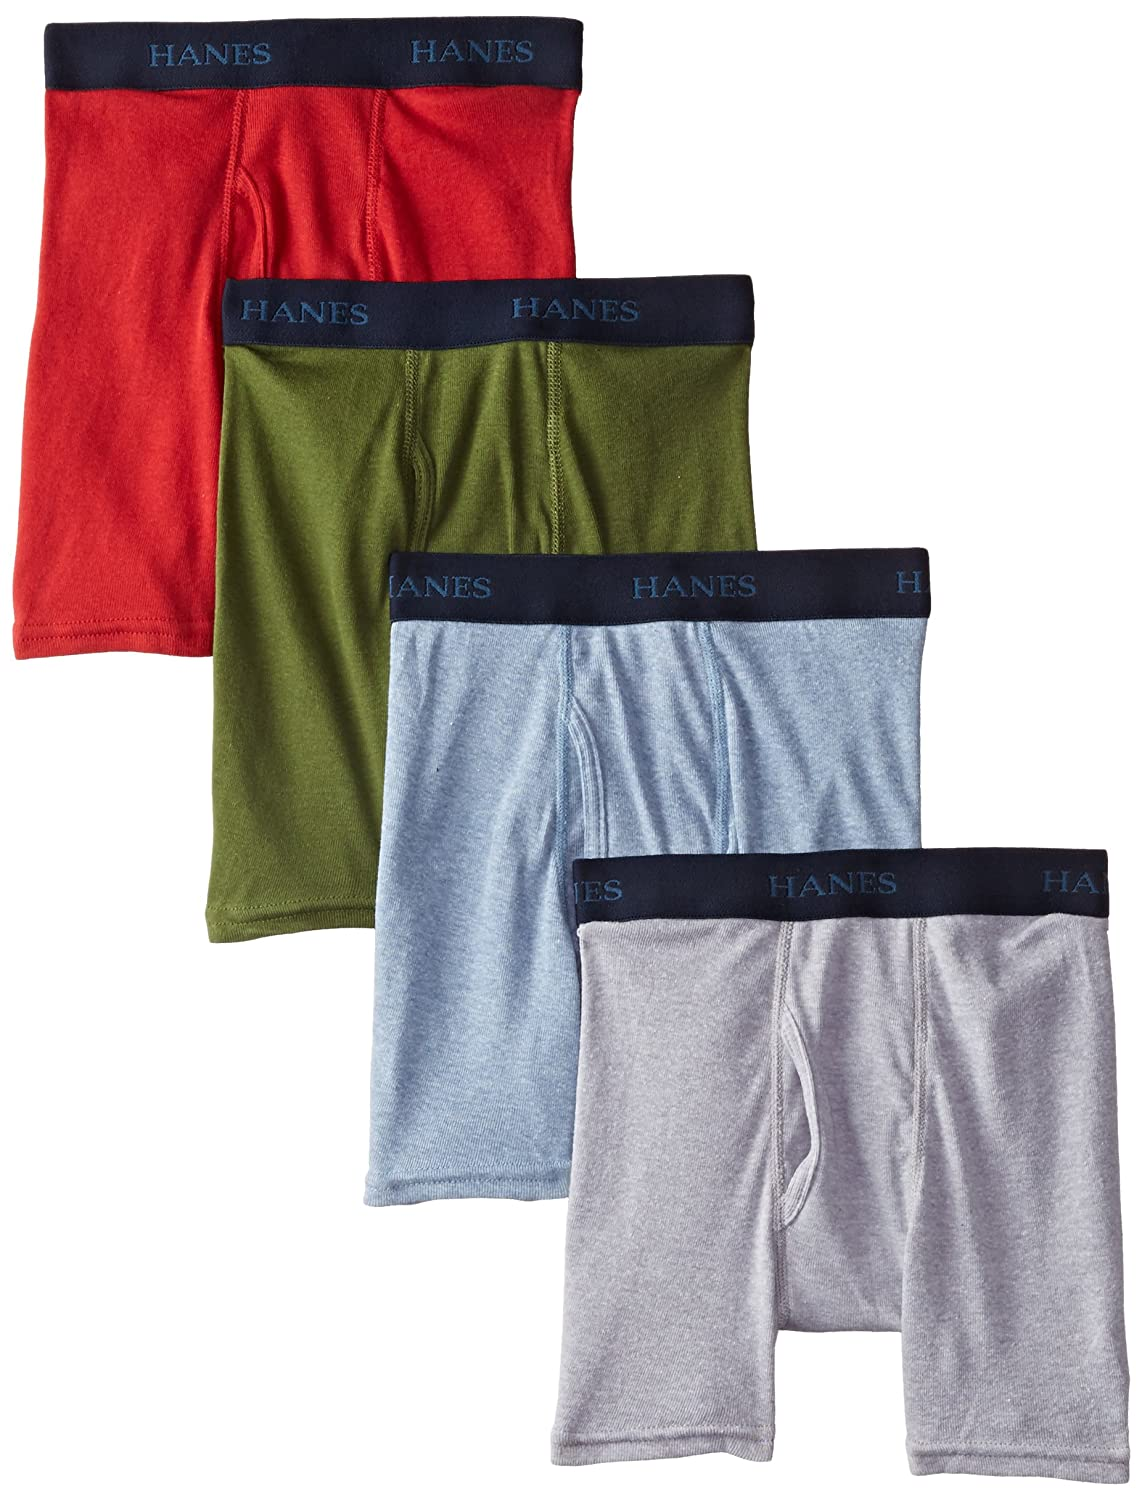 Hanes boys Big Boys 3 Pack Ultimate Comfortsoft Printed Brief, Assorted, Small Hanes Boys 8-20 Underwear BU740K